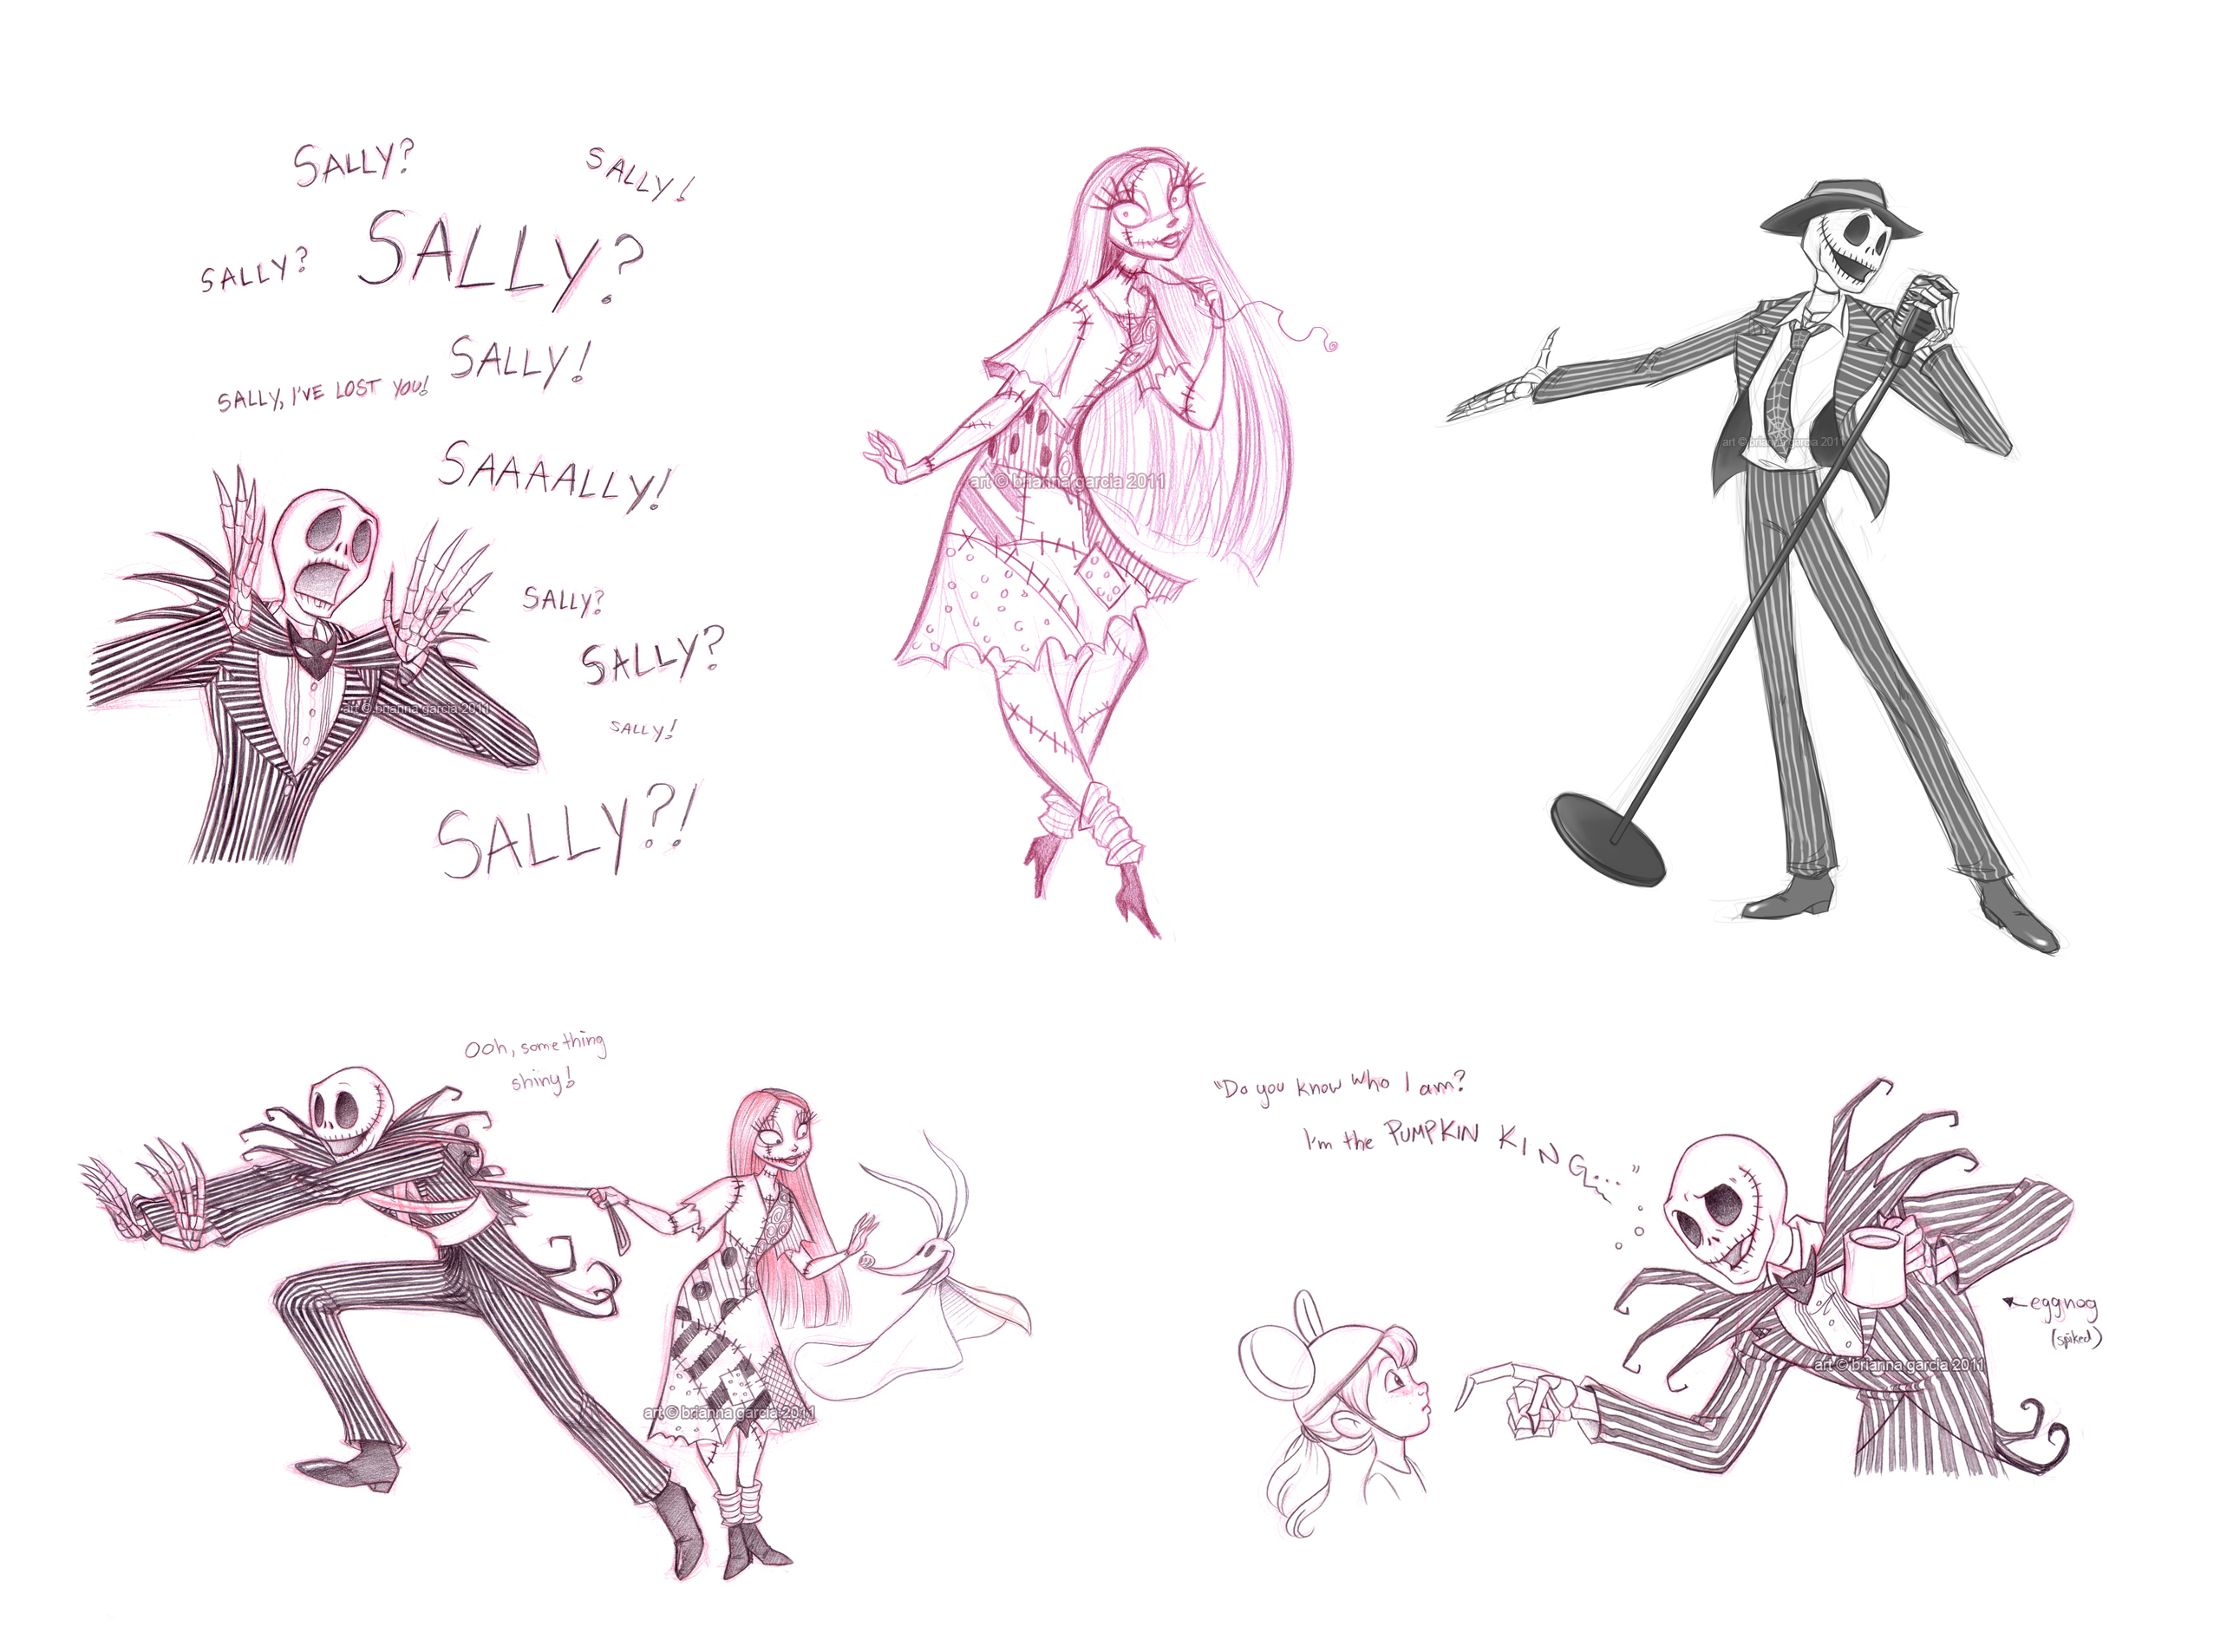 jack and sally sketchdump by briannacherrygarcia on deviantart